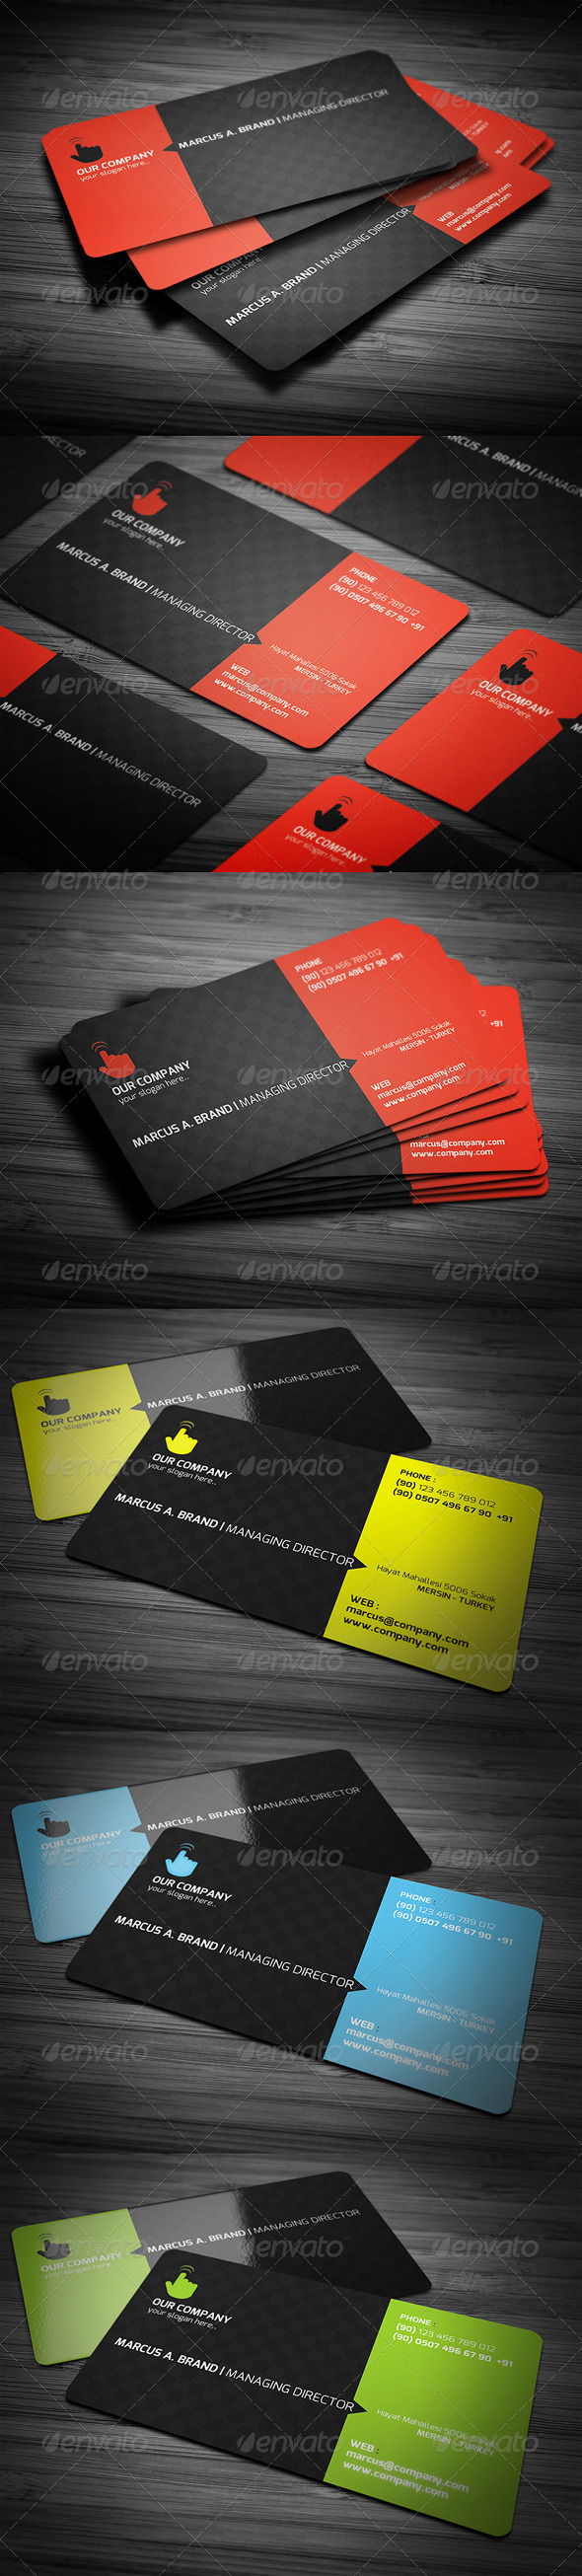 GraphicRiver Rounded Corner Business Card 2975934